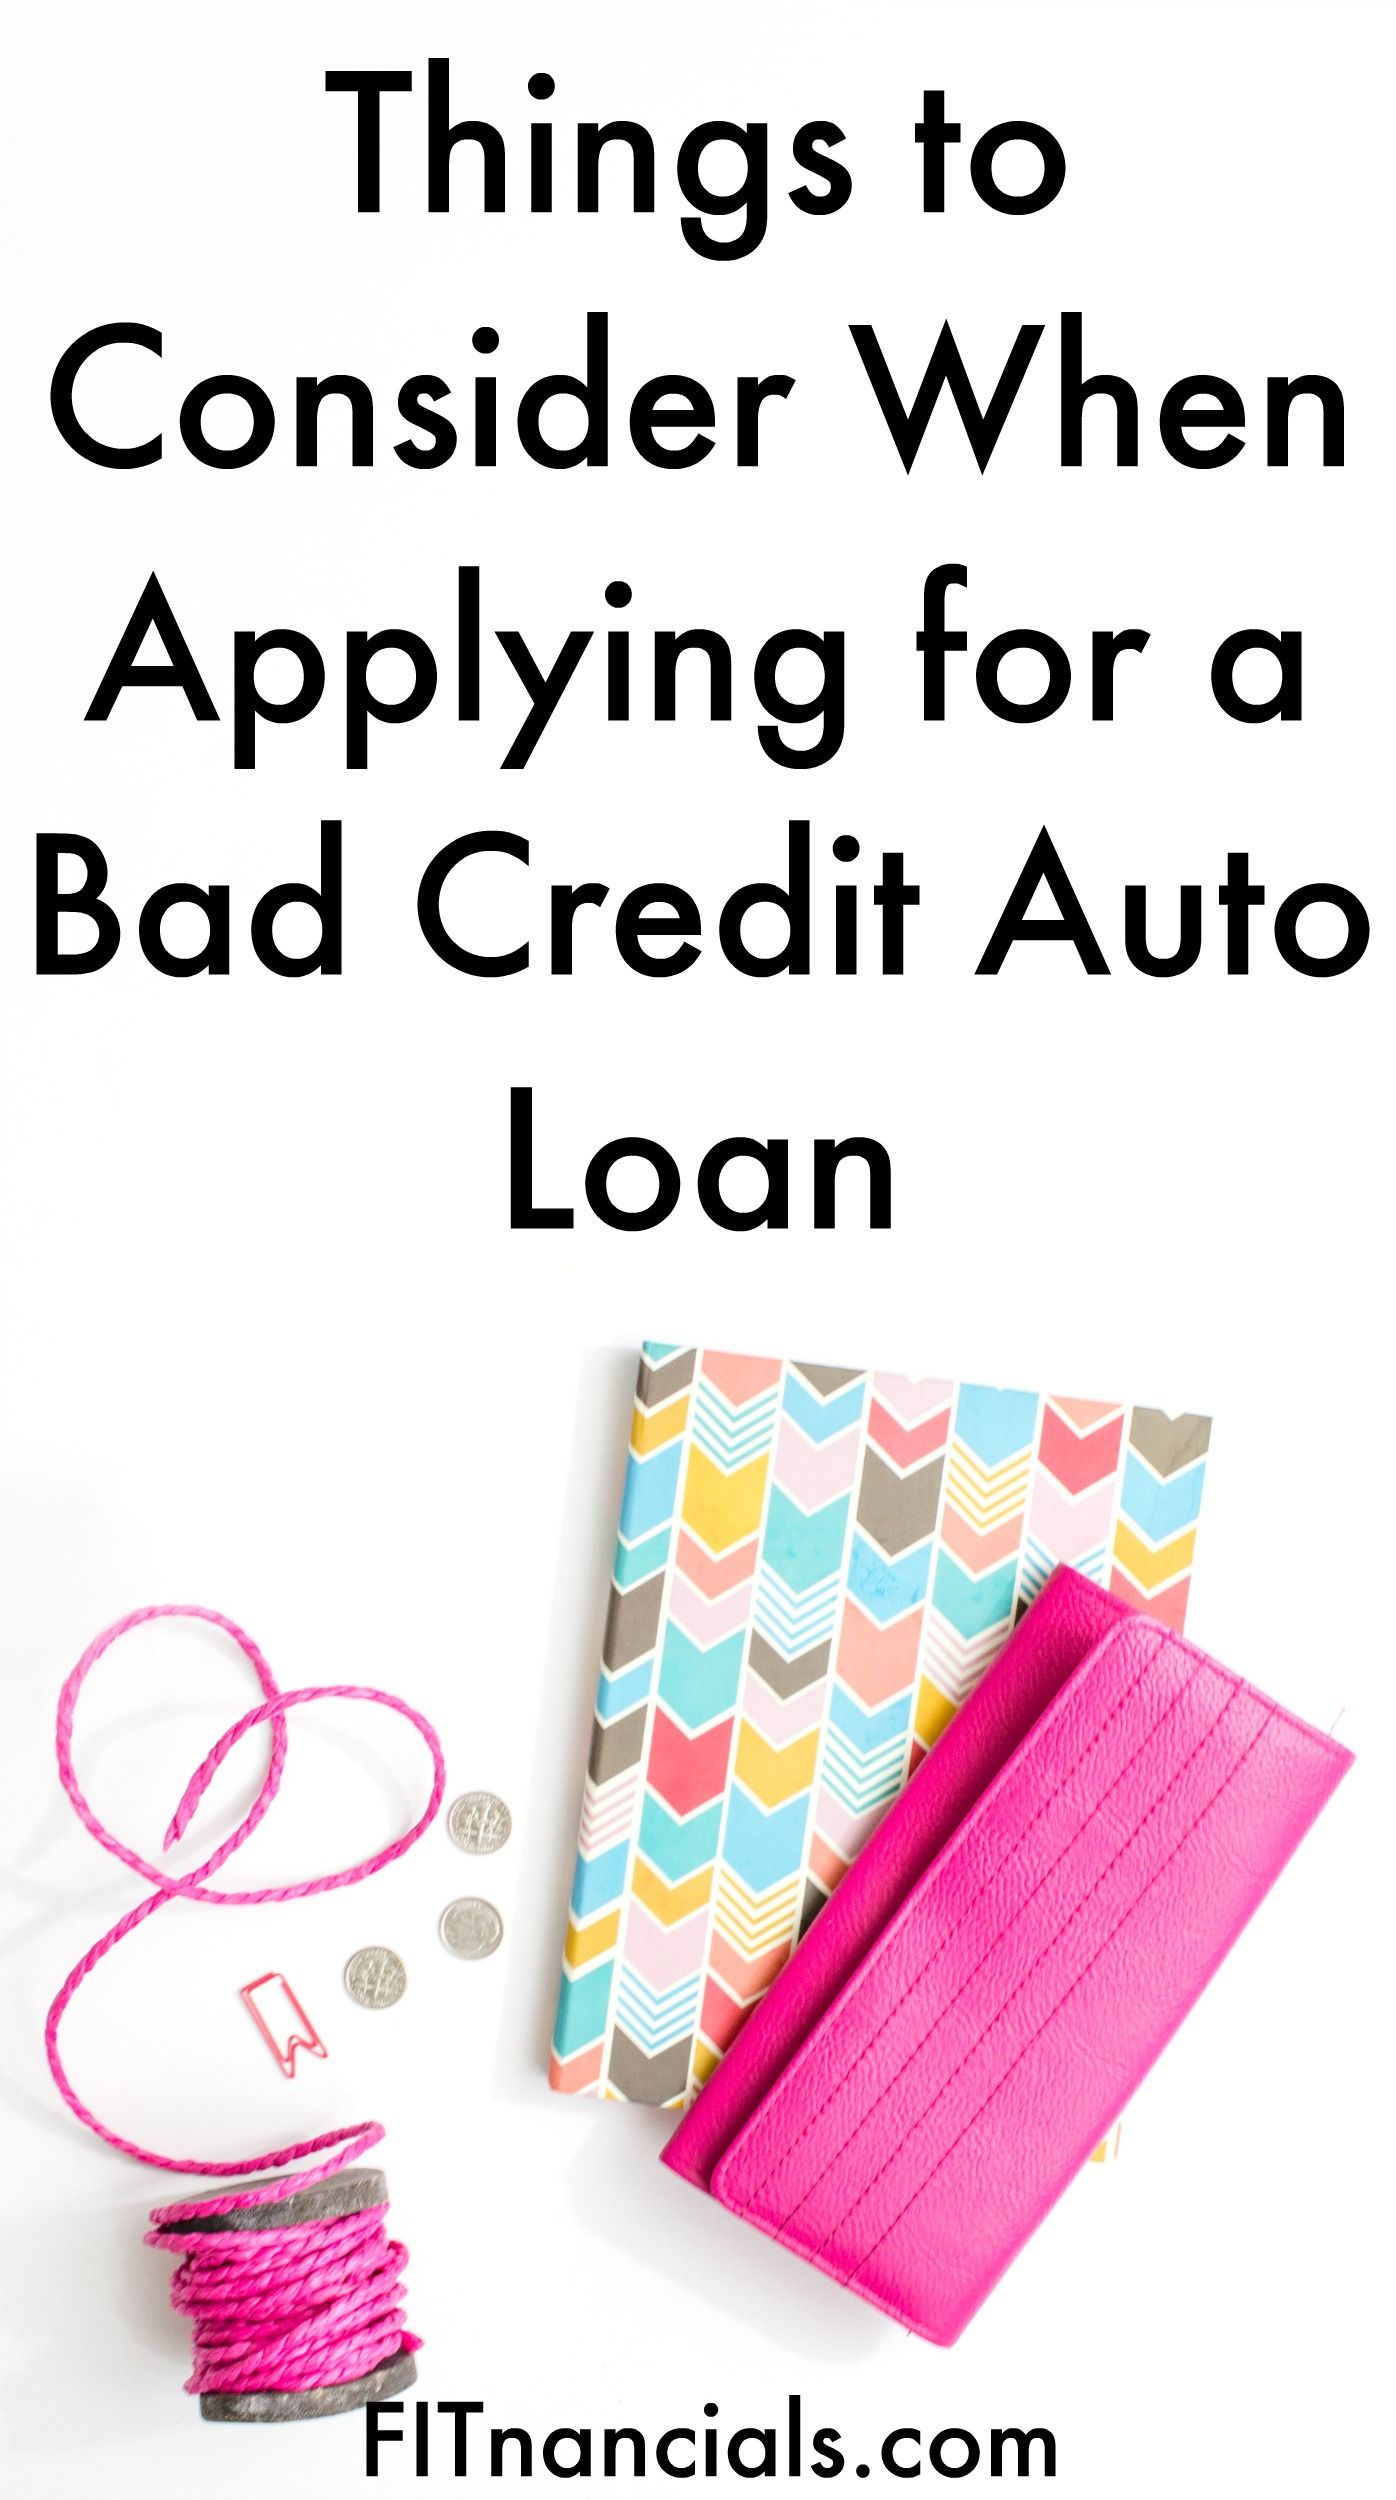 Things to Consider When Applying for a Bad Credit Auto Loan